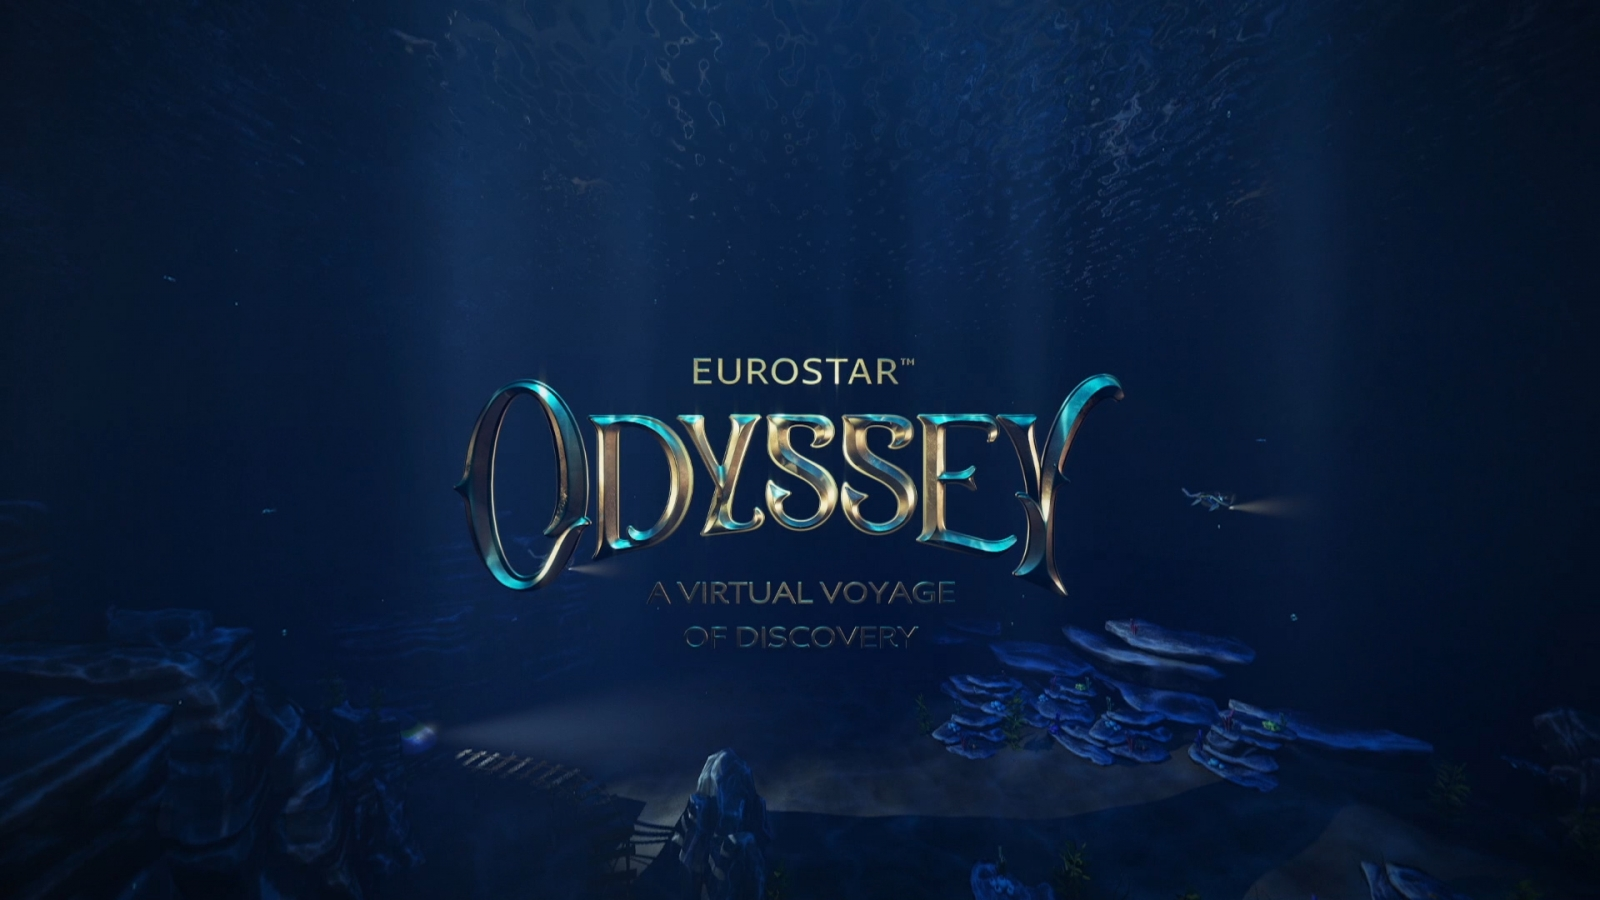 Now You Can Go Under The Sea In VR While Travelling On The Eurostar